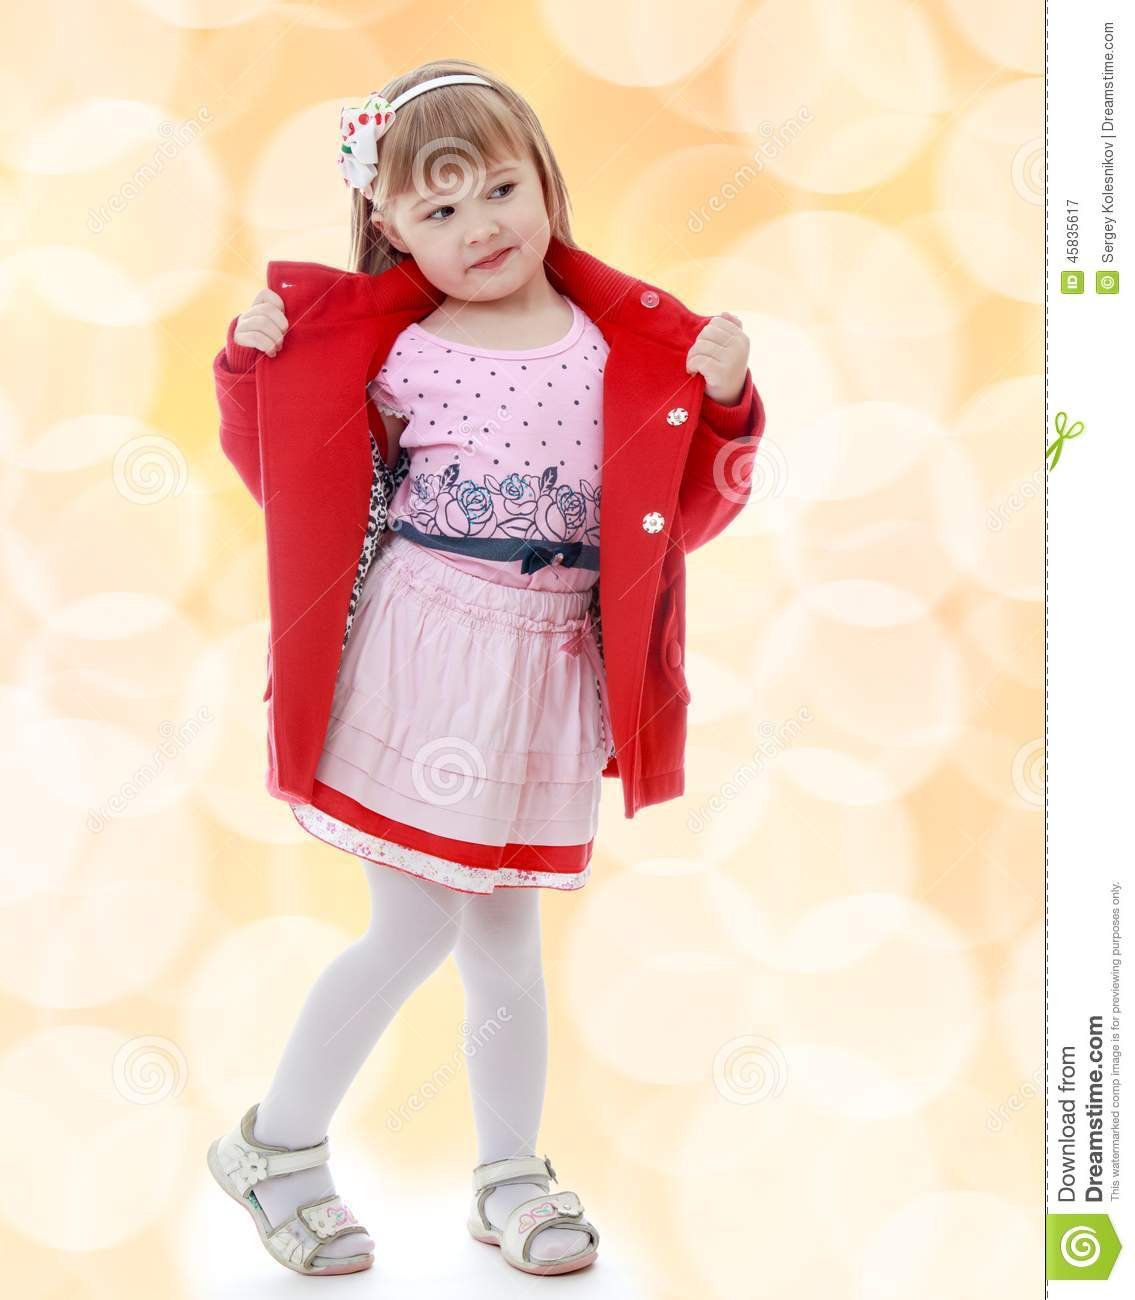 fashionable little girl stock photo image 45835617